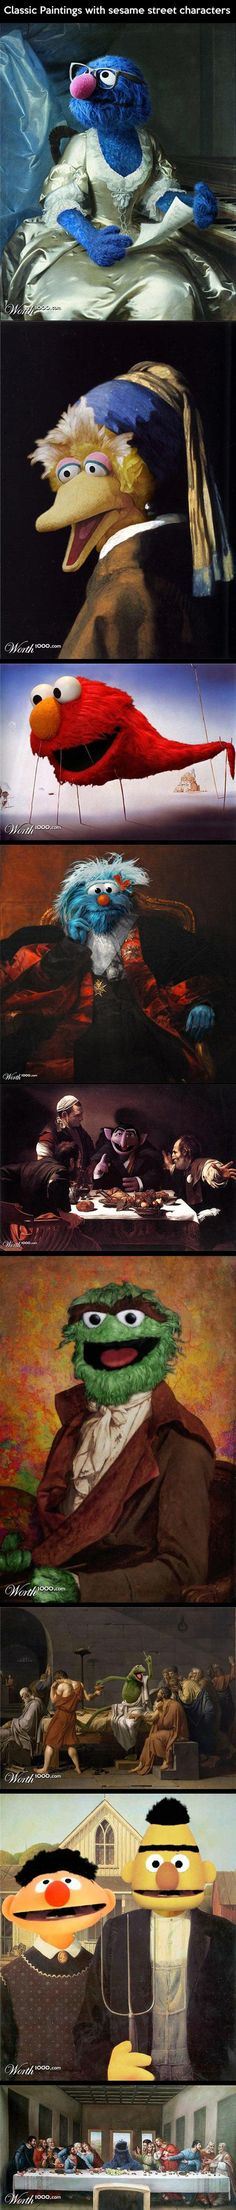 Sesame Street Classic Paintings                                                                                                                                                                                 More